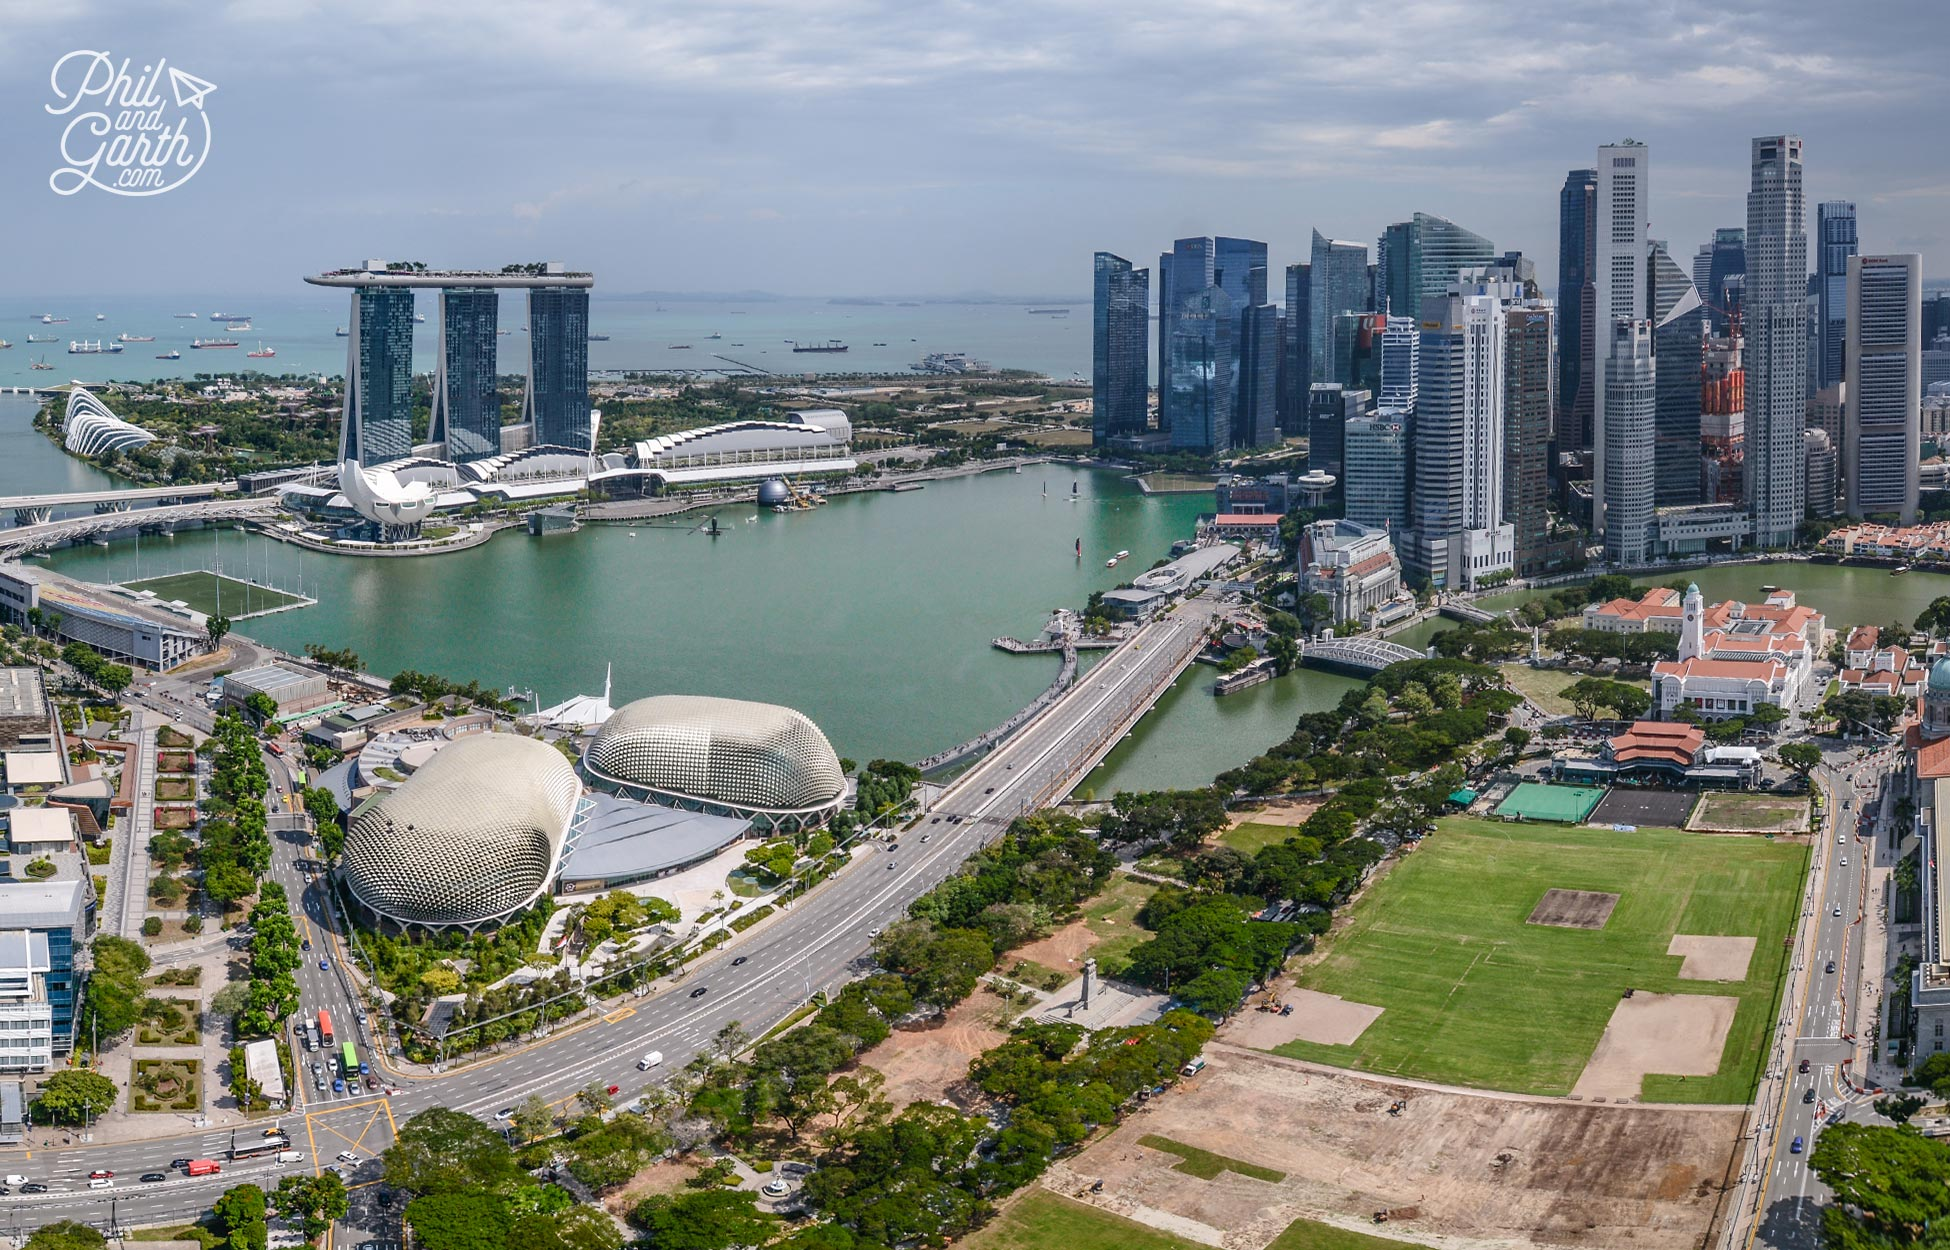 An aerial view of Singapore's Marina Bay